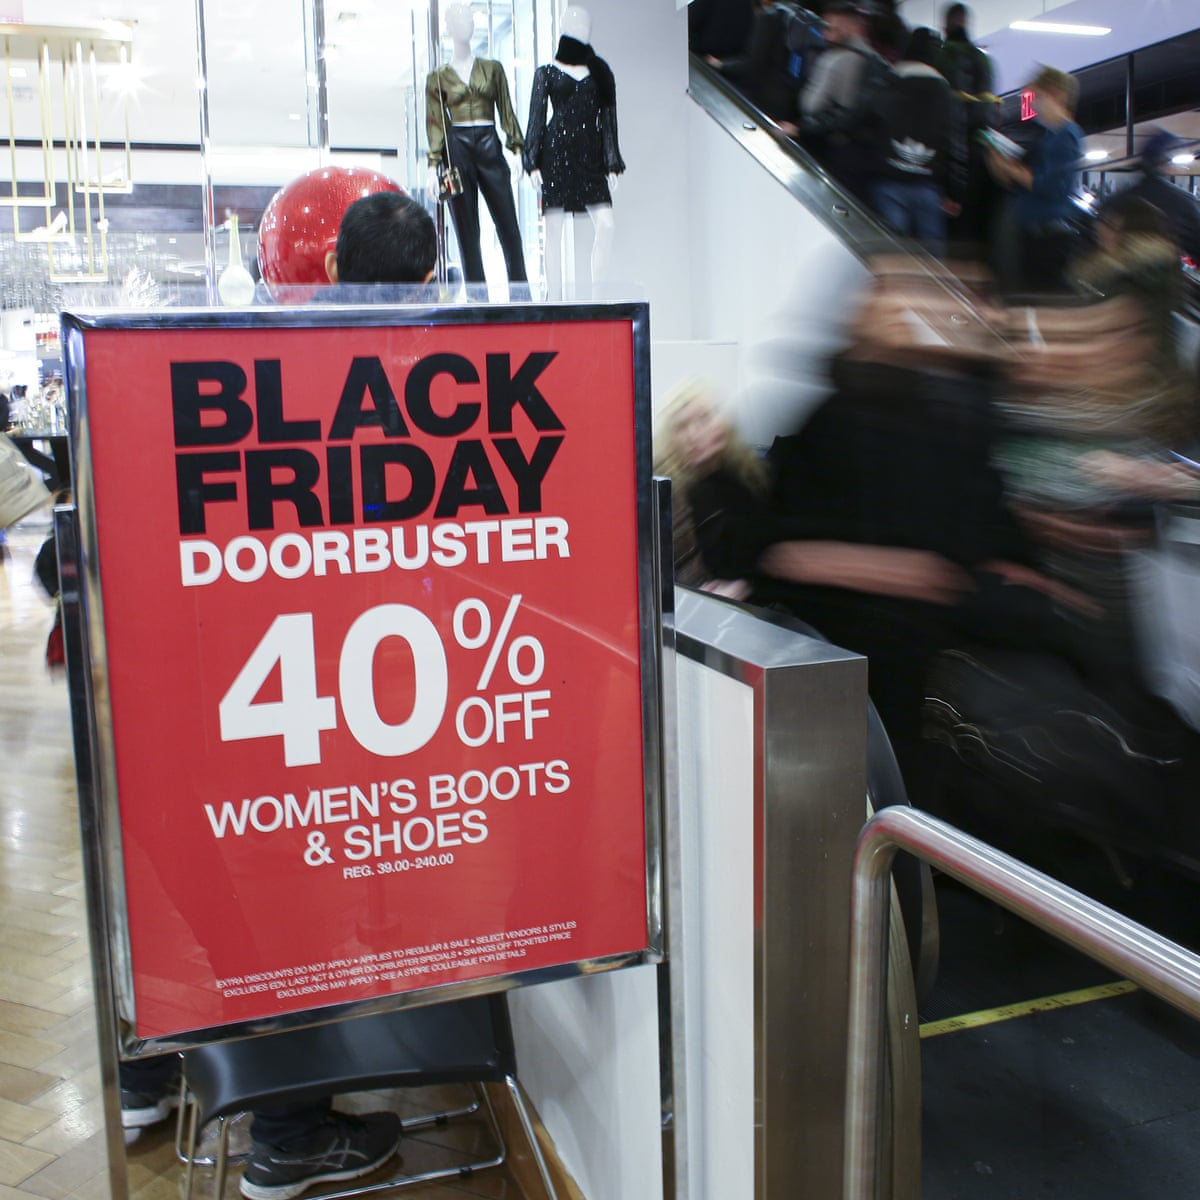 Us Retail Employees Call Out Working Conditions With Black Friday Protests Black Friday The Guardian